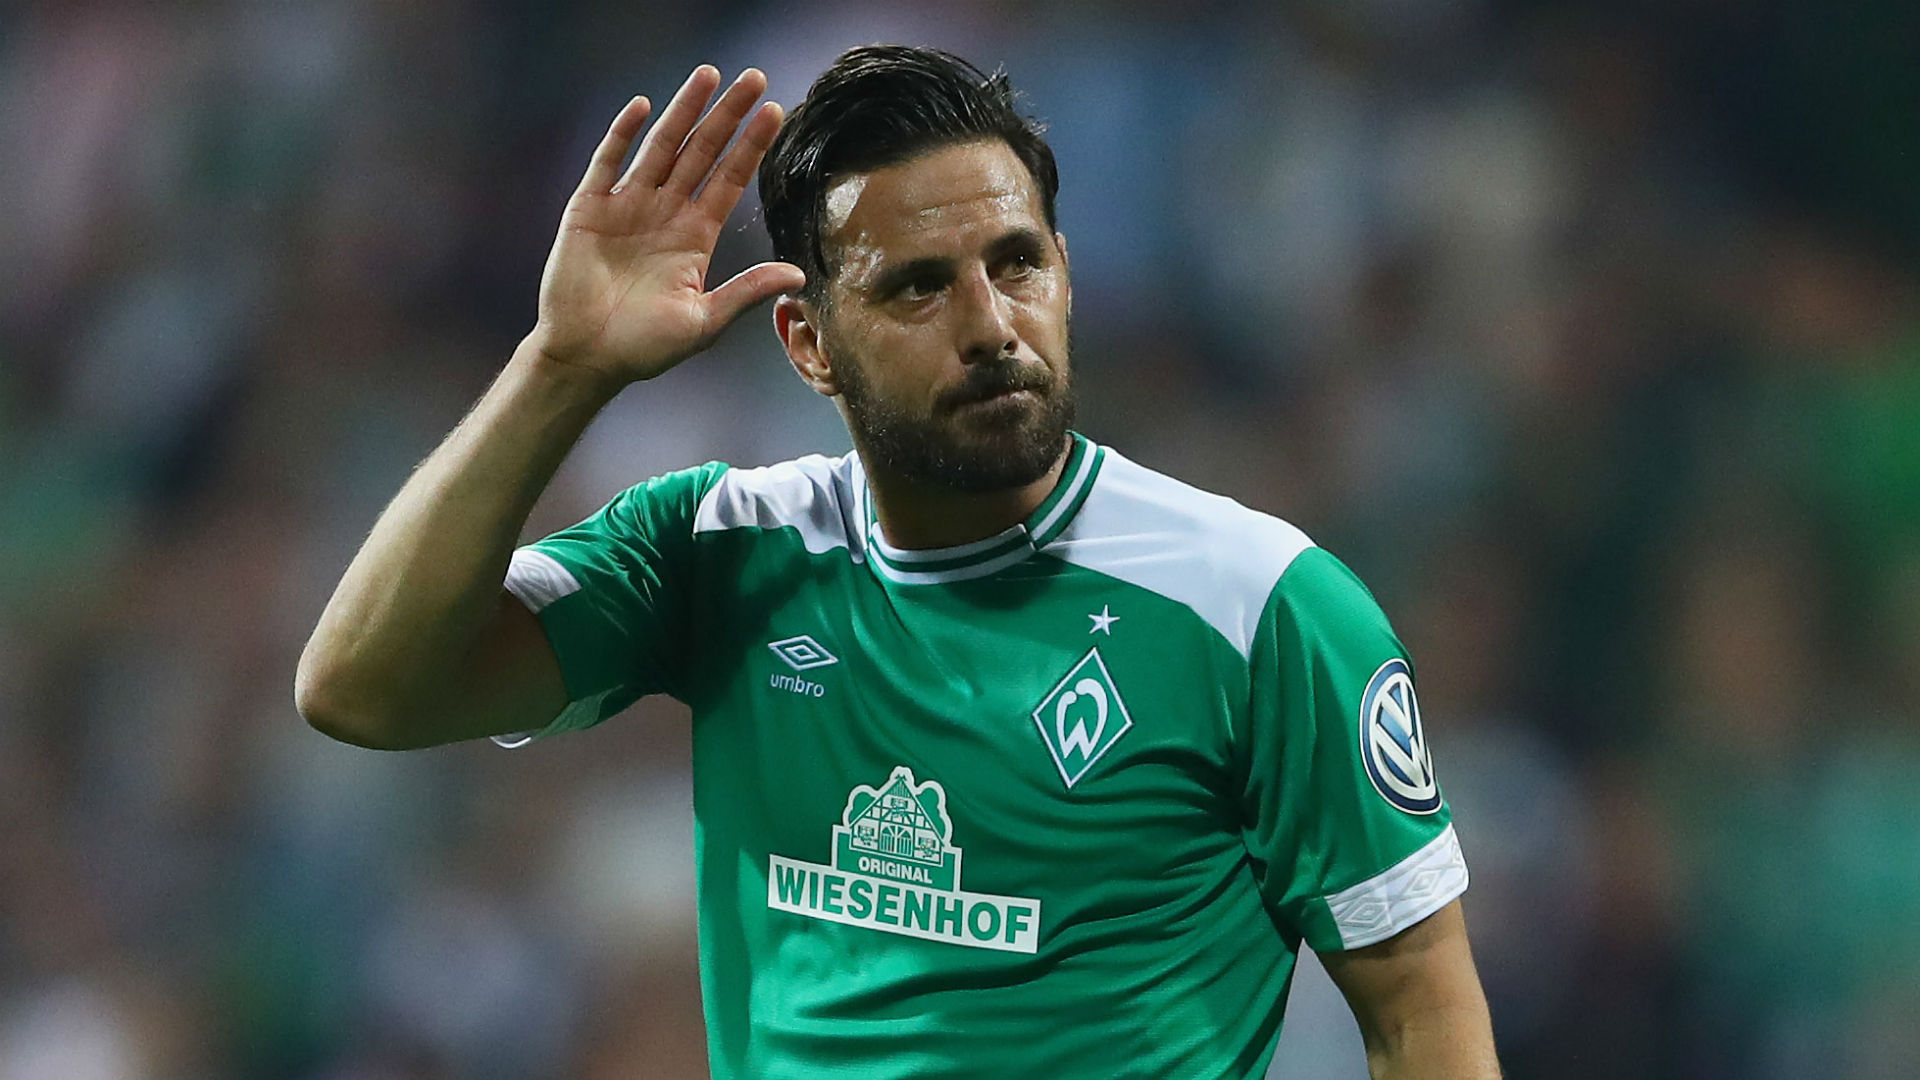 Werder veteran Pizarro to sign new contract at 40